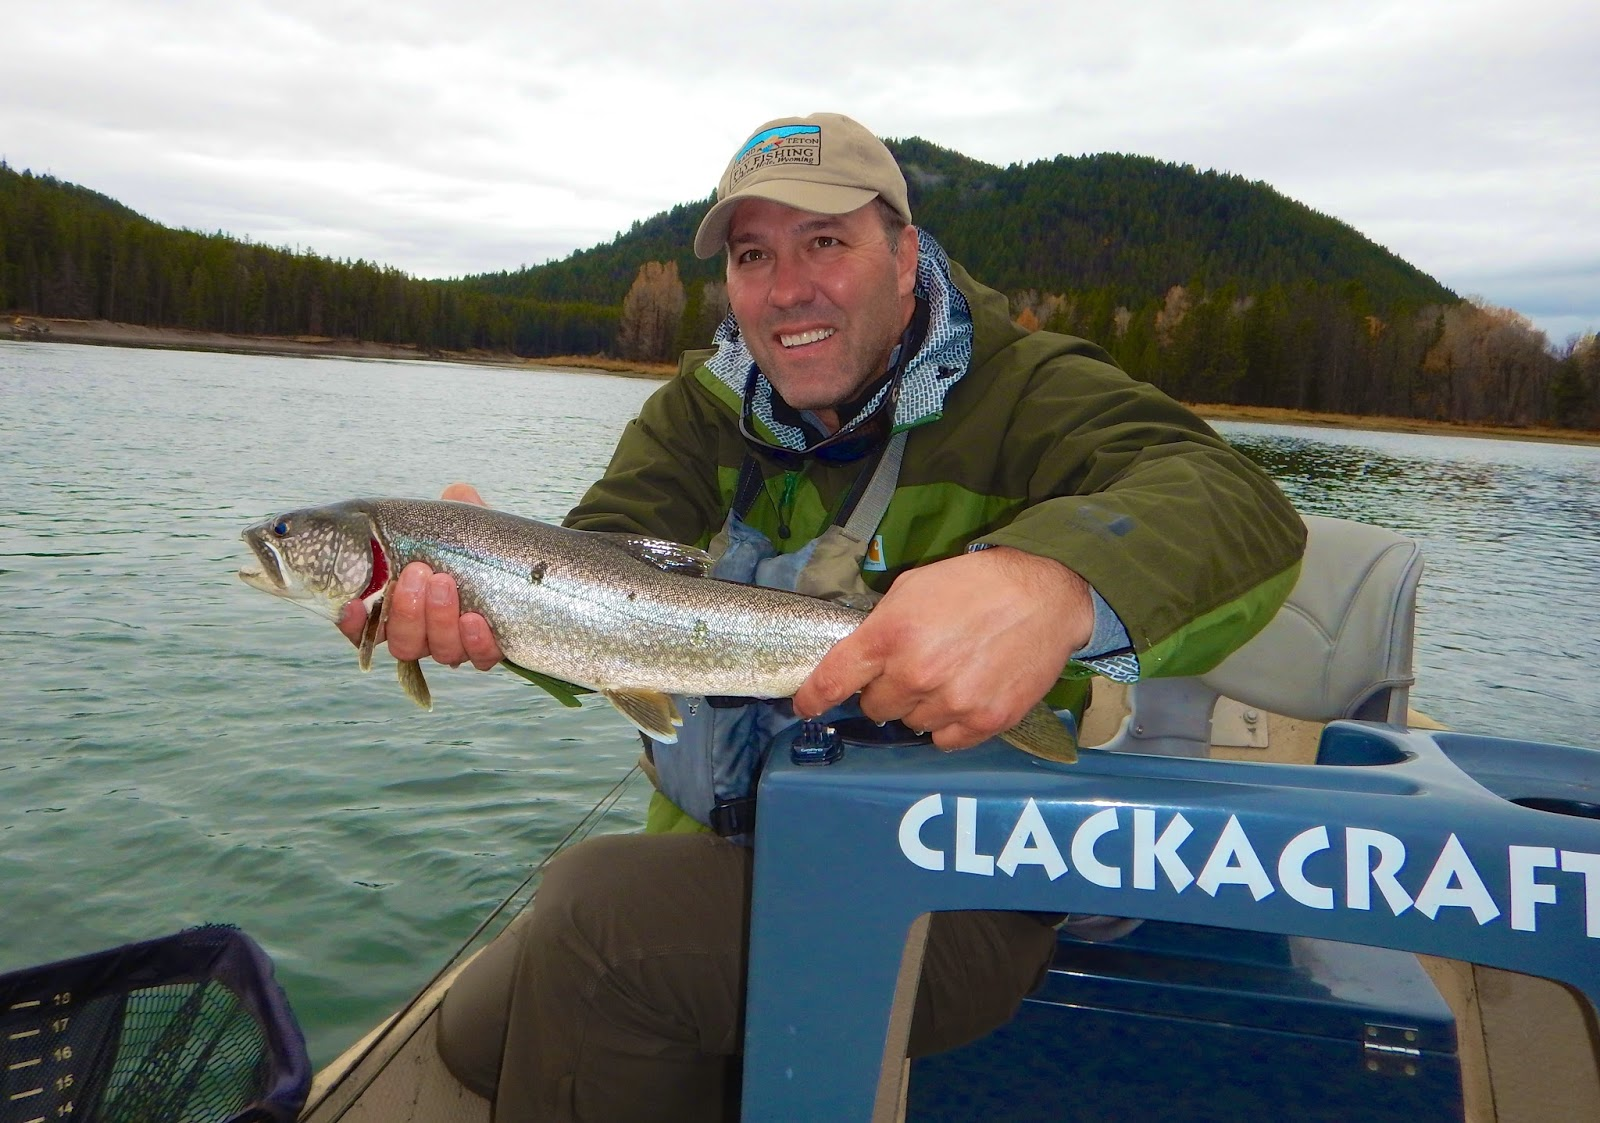 Jackson hole fly fishing report october 9 2015 for Lake jackson fishing report